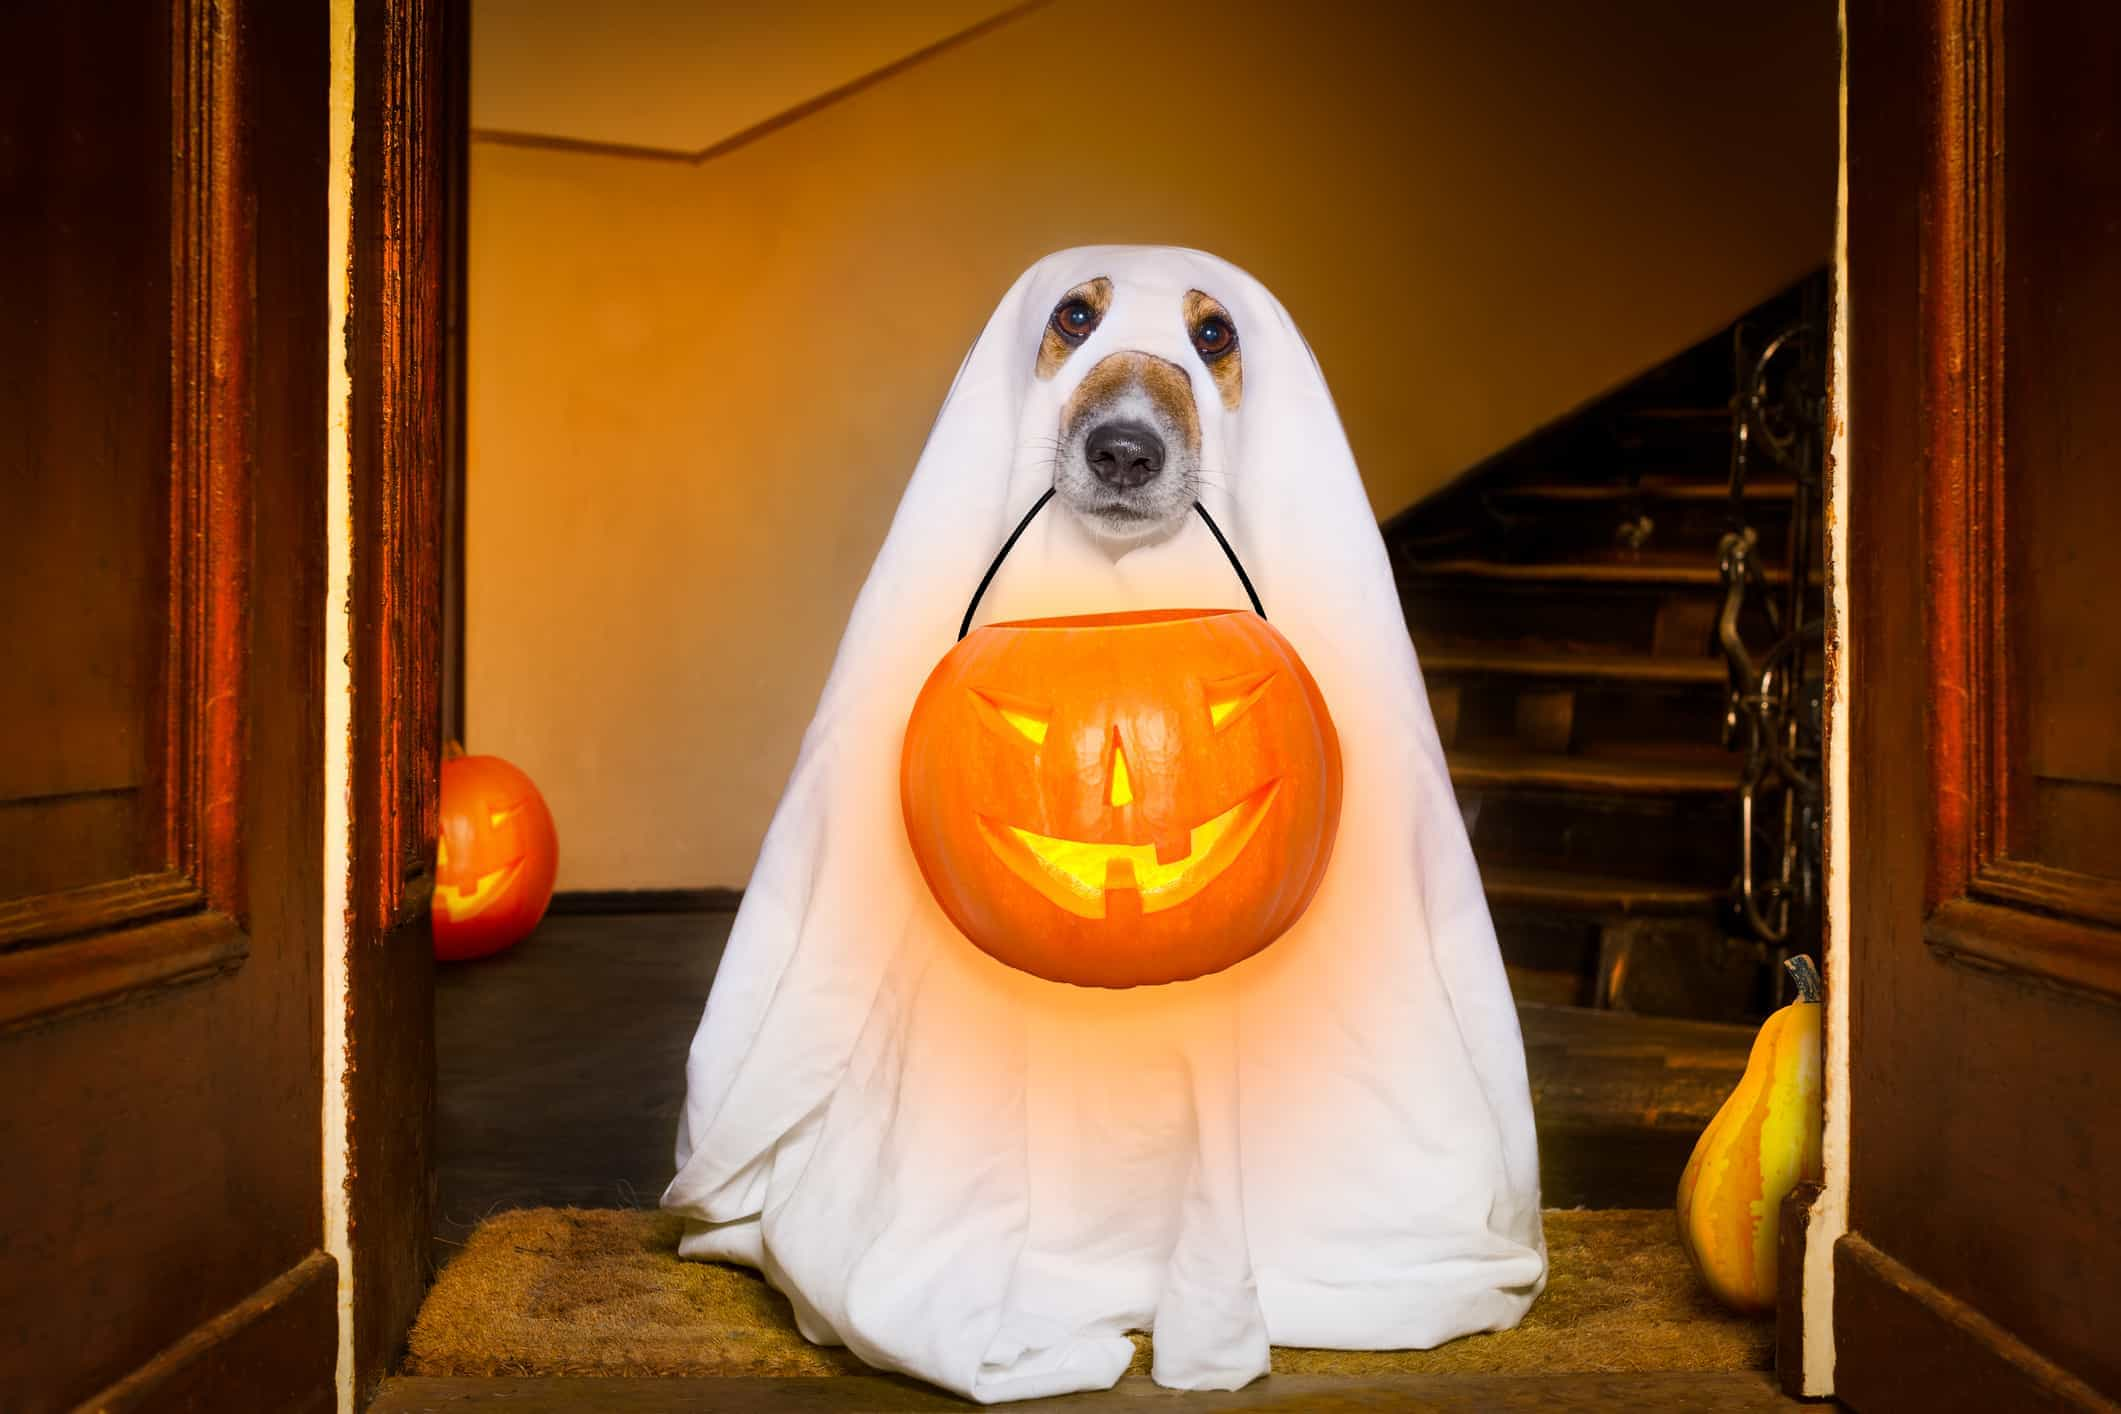 A dog dressed as a ghost goes trick-or-treating on Halloween